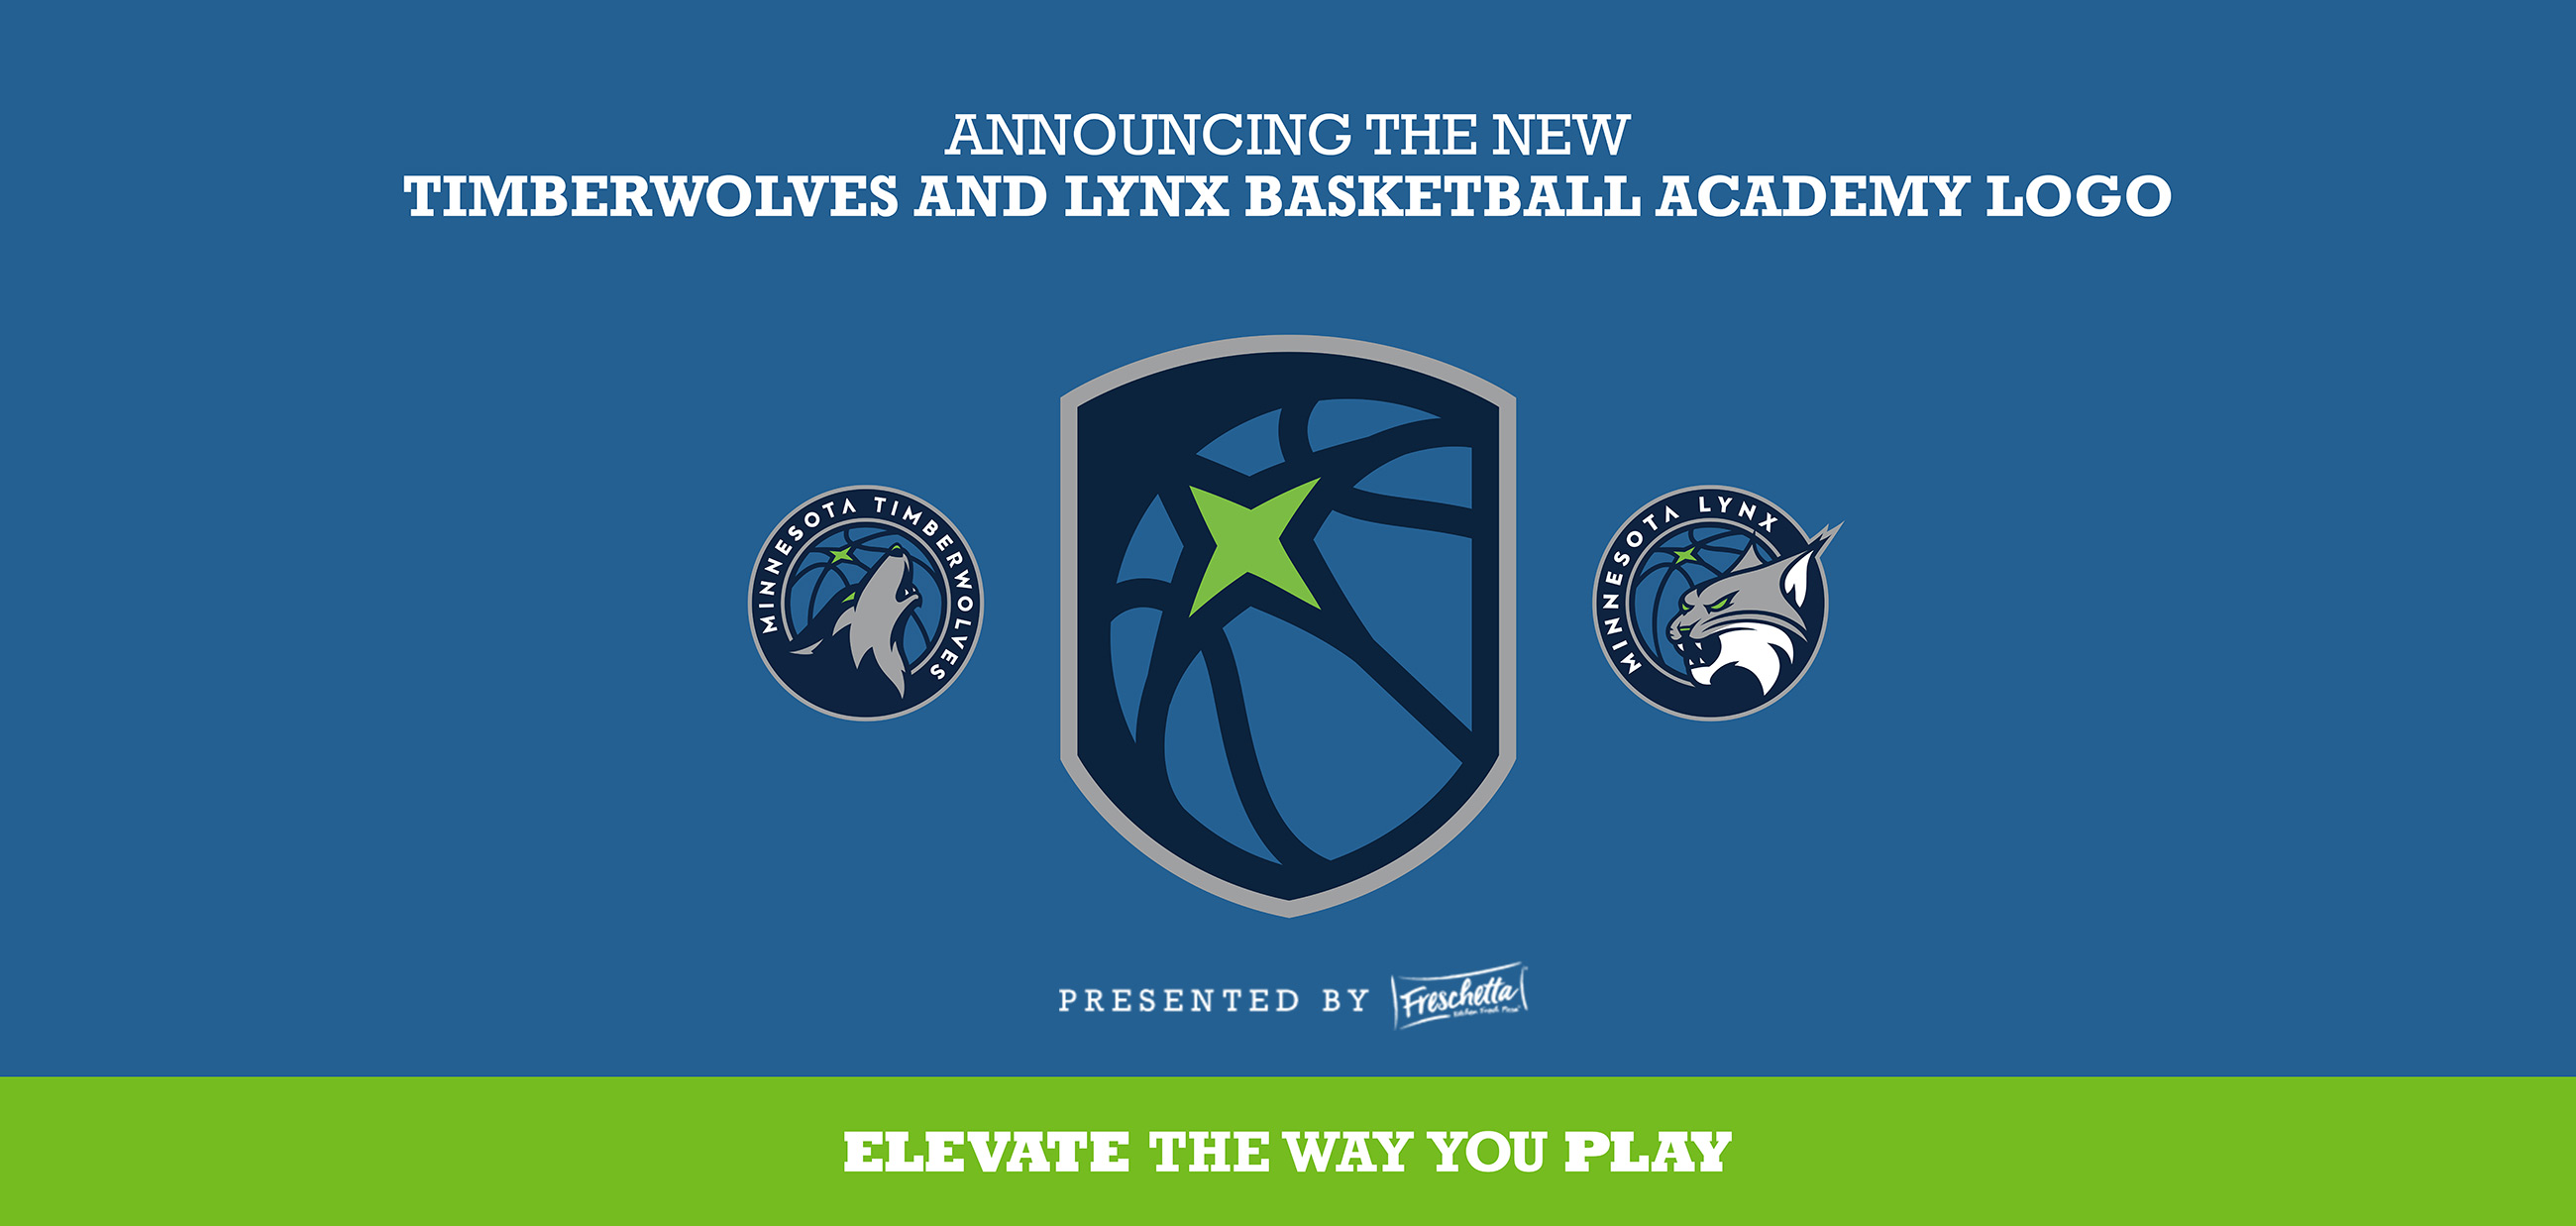 About The Timberwolves Lynx Academy Rebrand